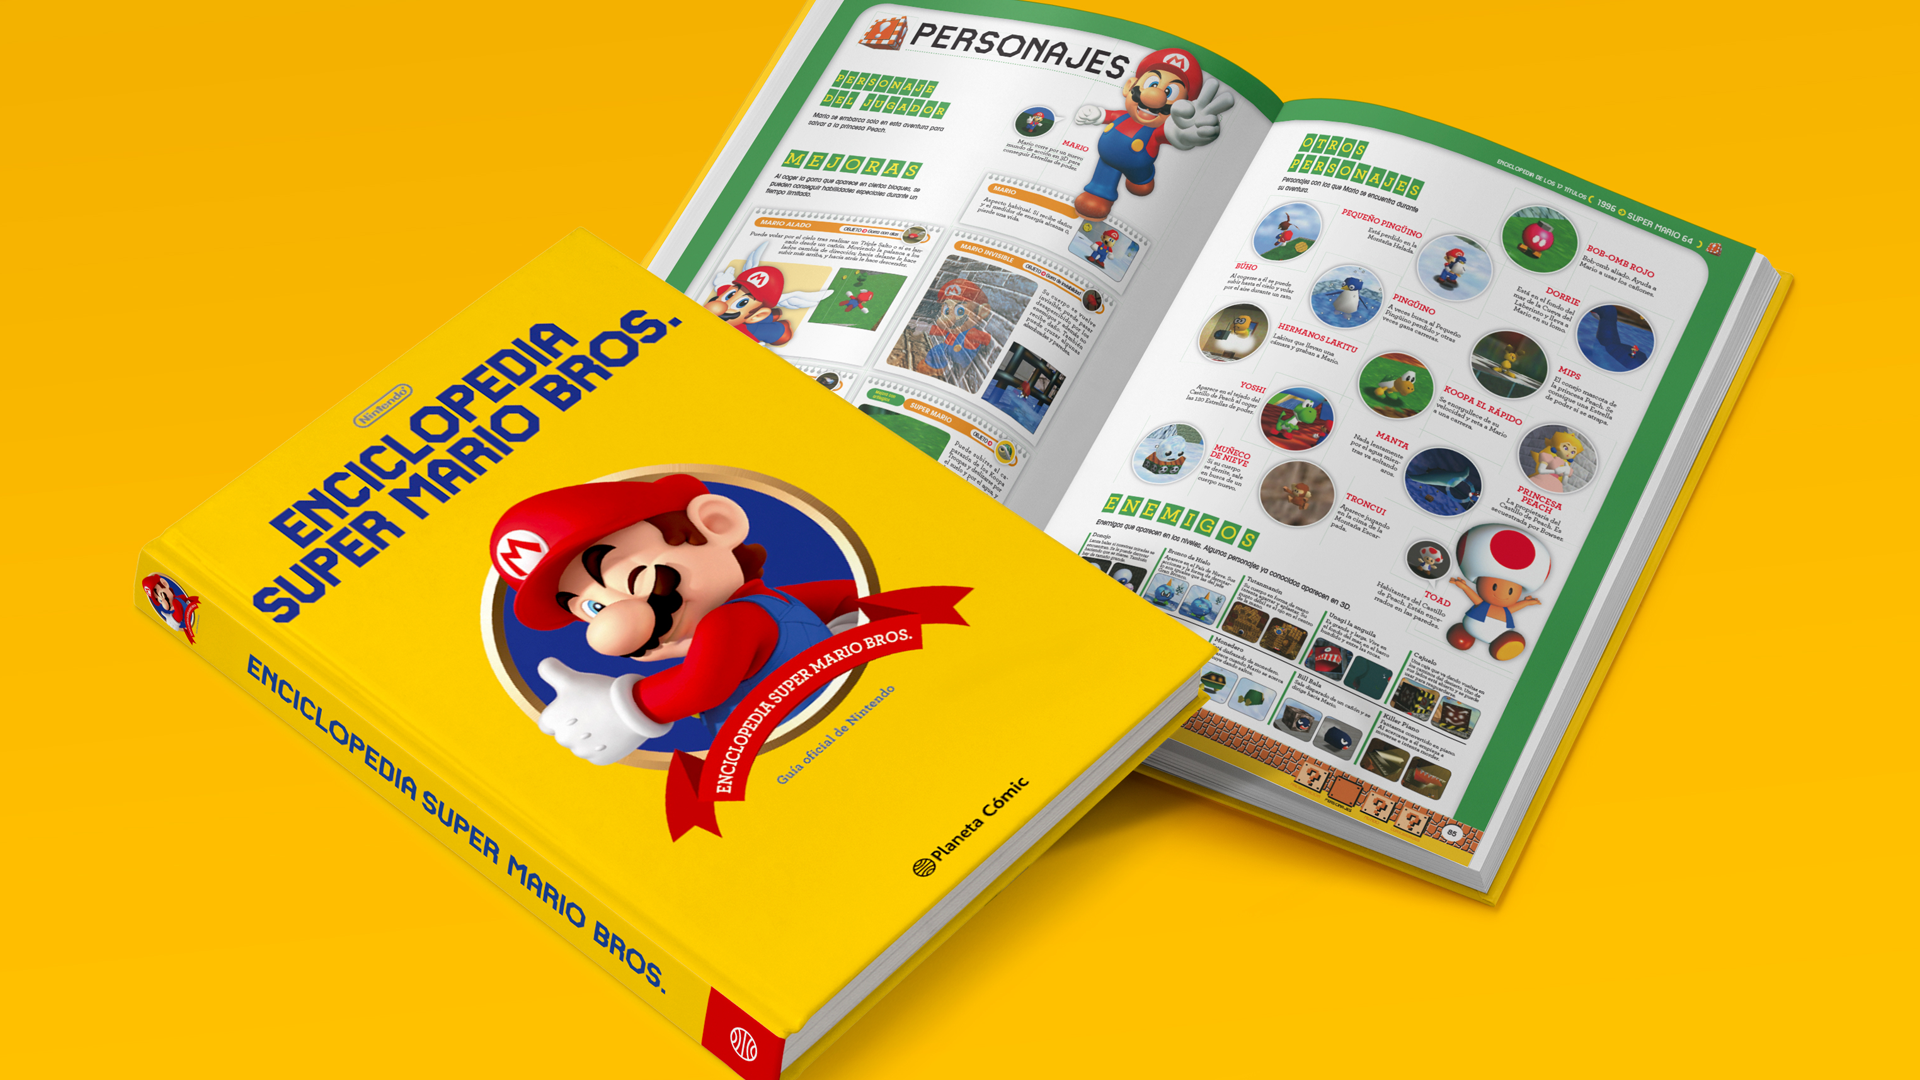 Enciclopedia Super Mario bros.